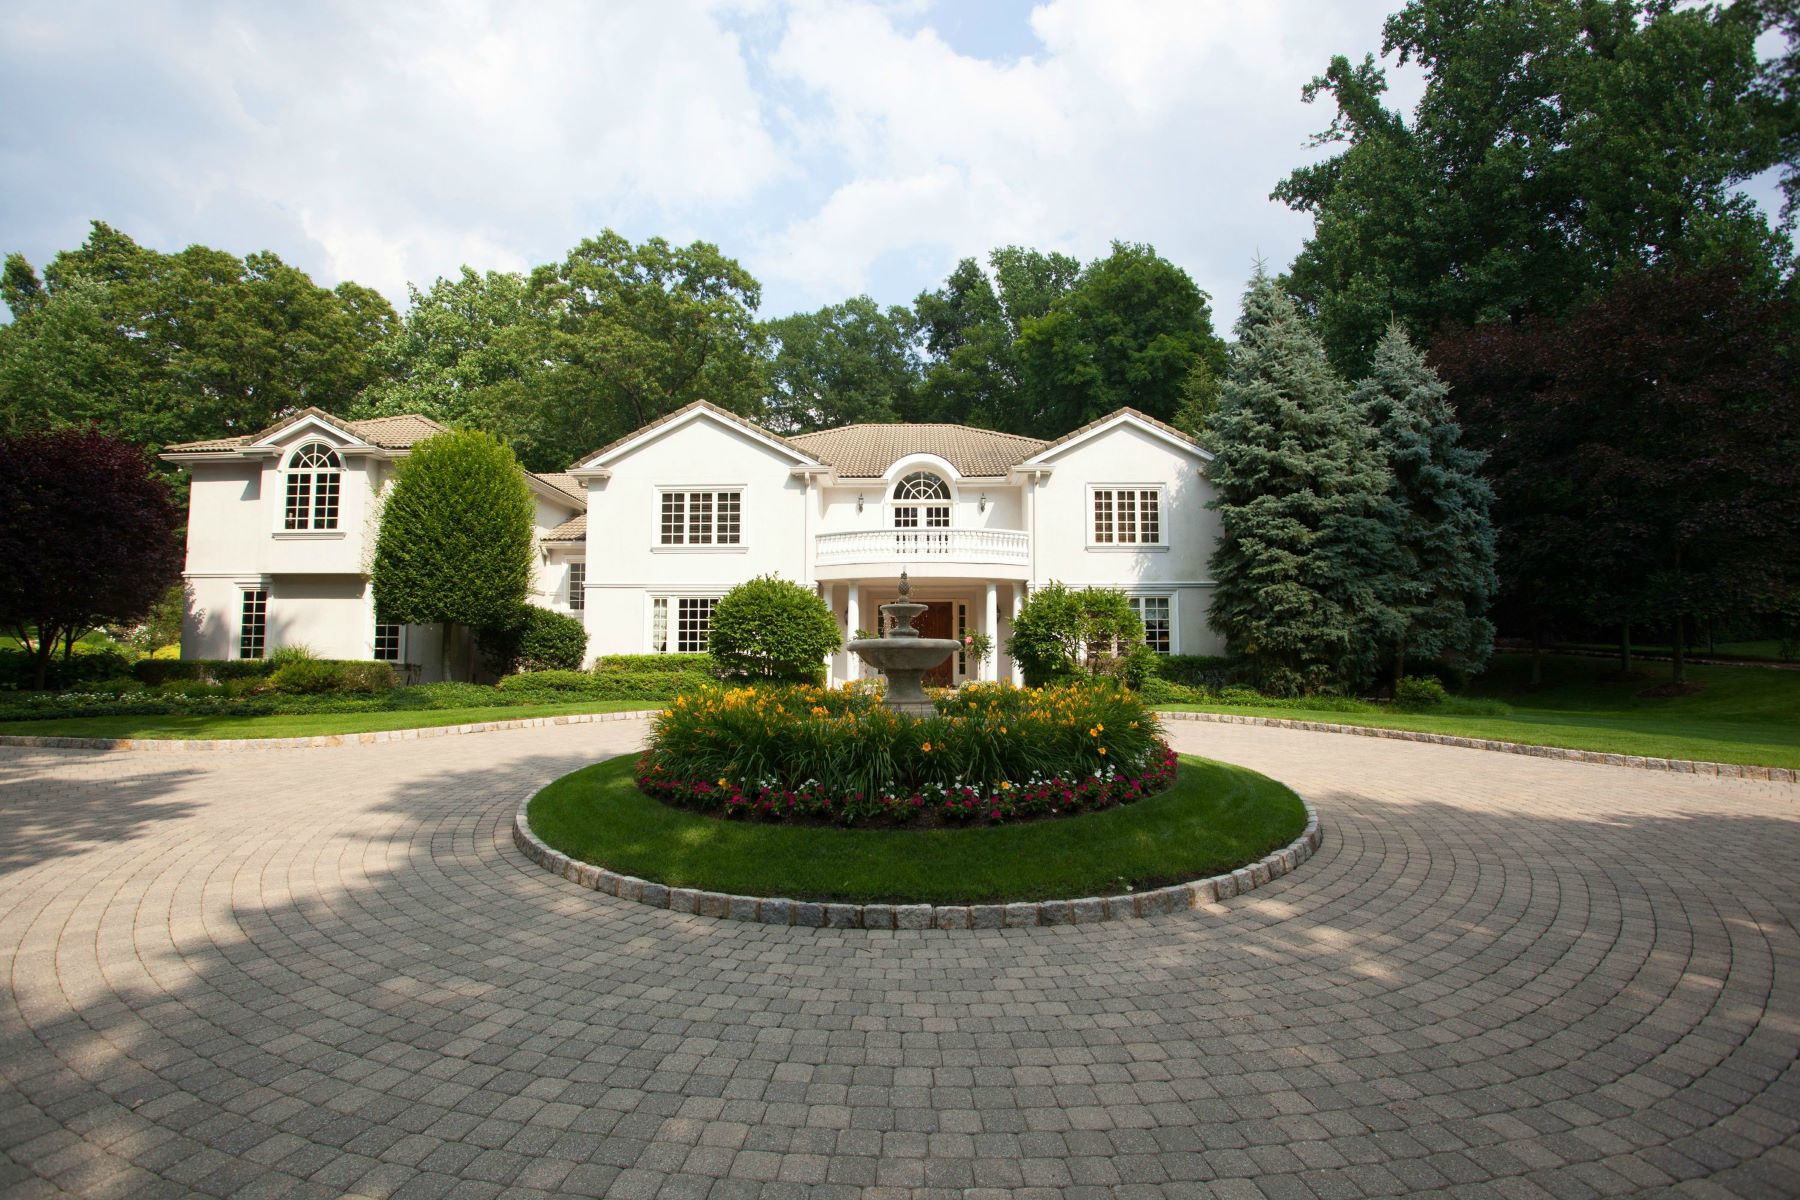 Single Family Home for Sale at Majestic Gated Alpine Estate 287 Anderson Avenue, Alpine, New Jersey 07620 United States